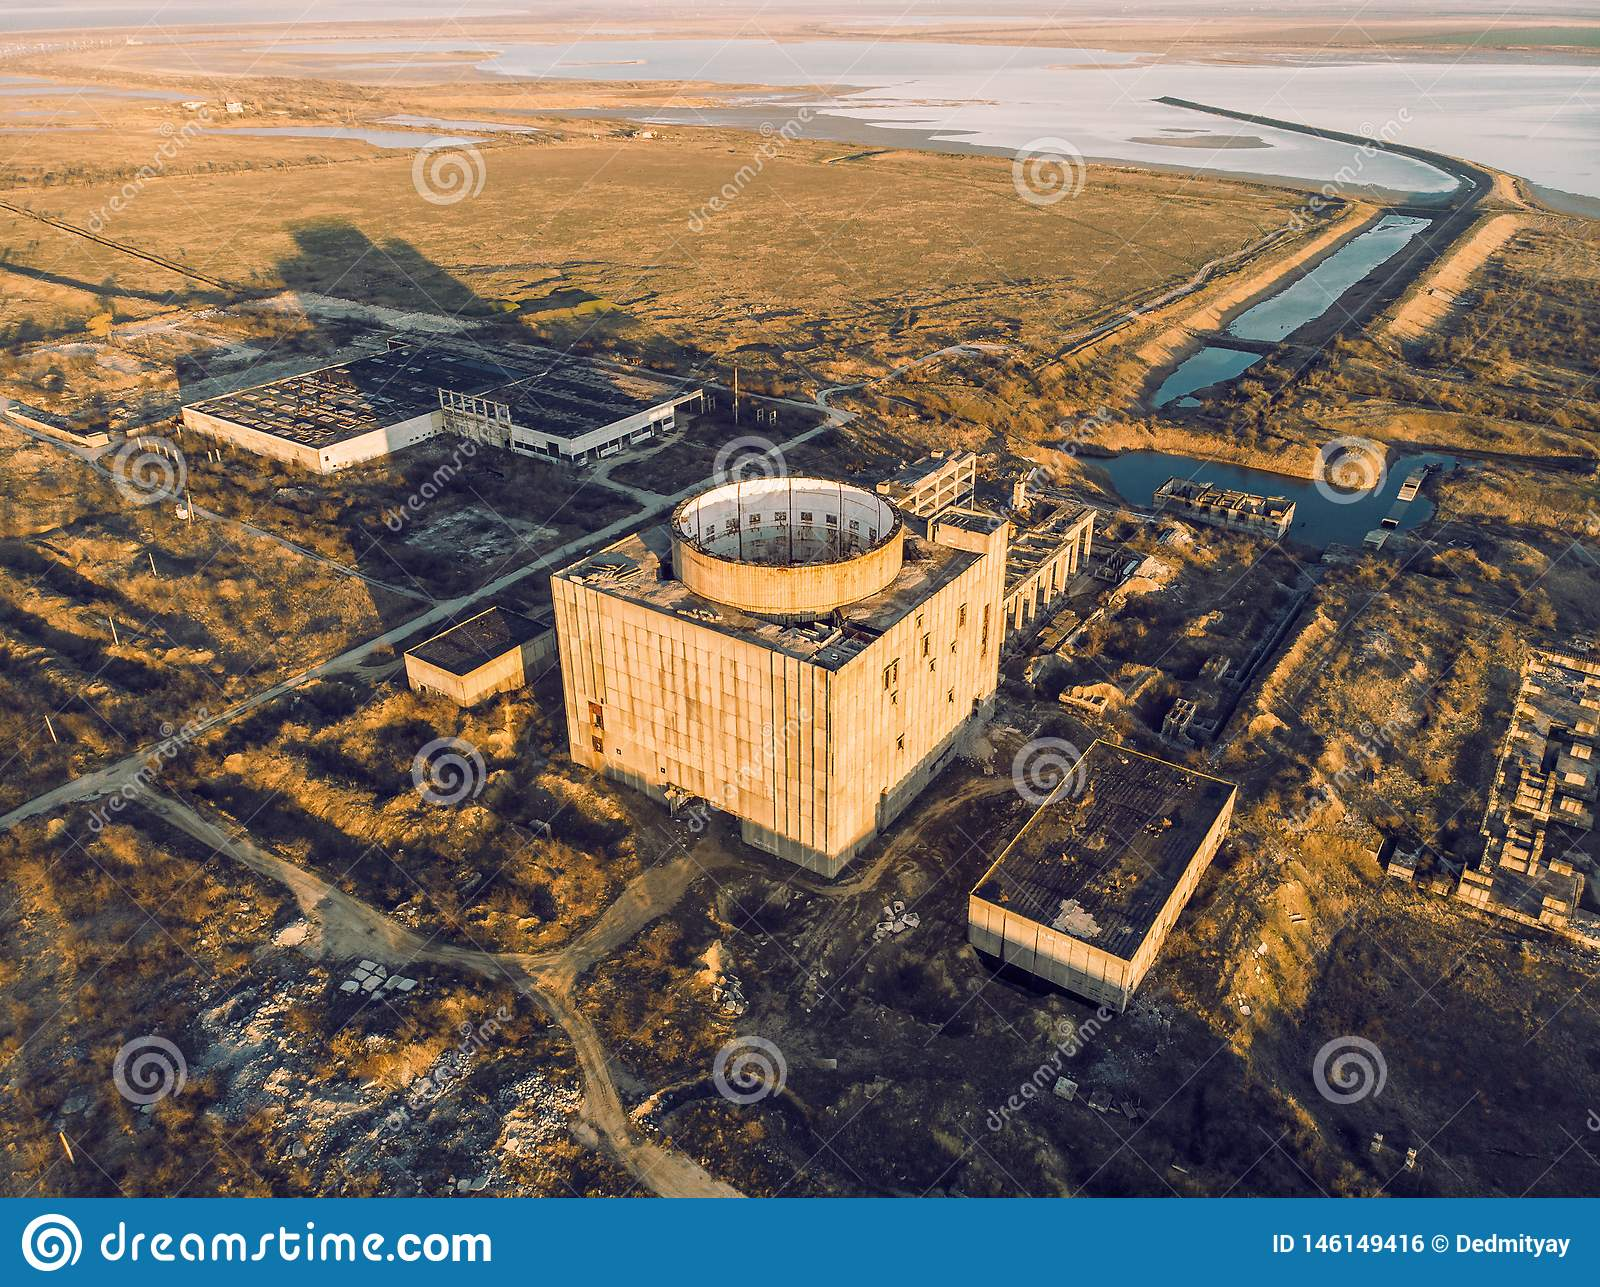 Abandoned And Ruined Nuclear Power Plant In Shelkino Crimea Industrial Construction With Round Tower Of Atomic Reactor Stock Photo Image Of Generator Generation 146149416